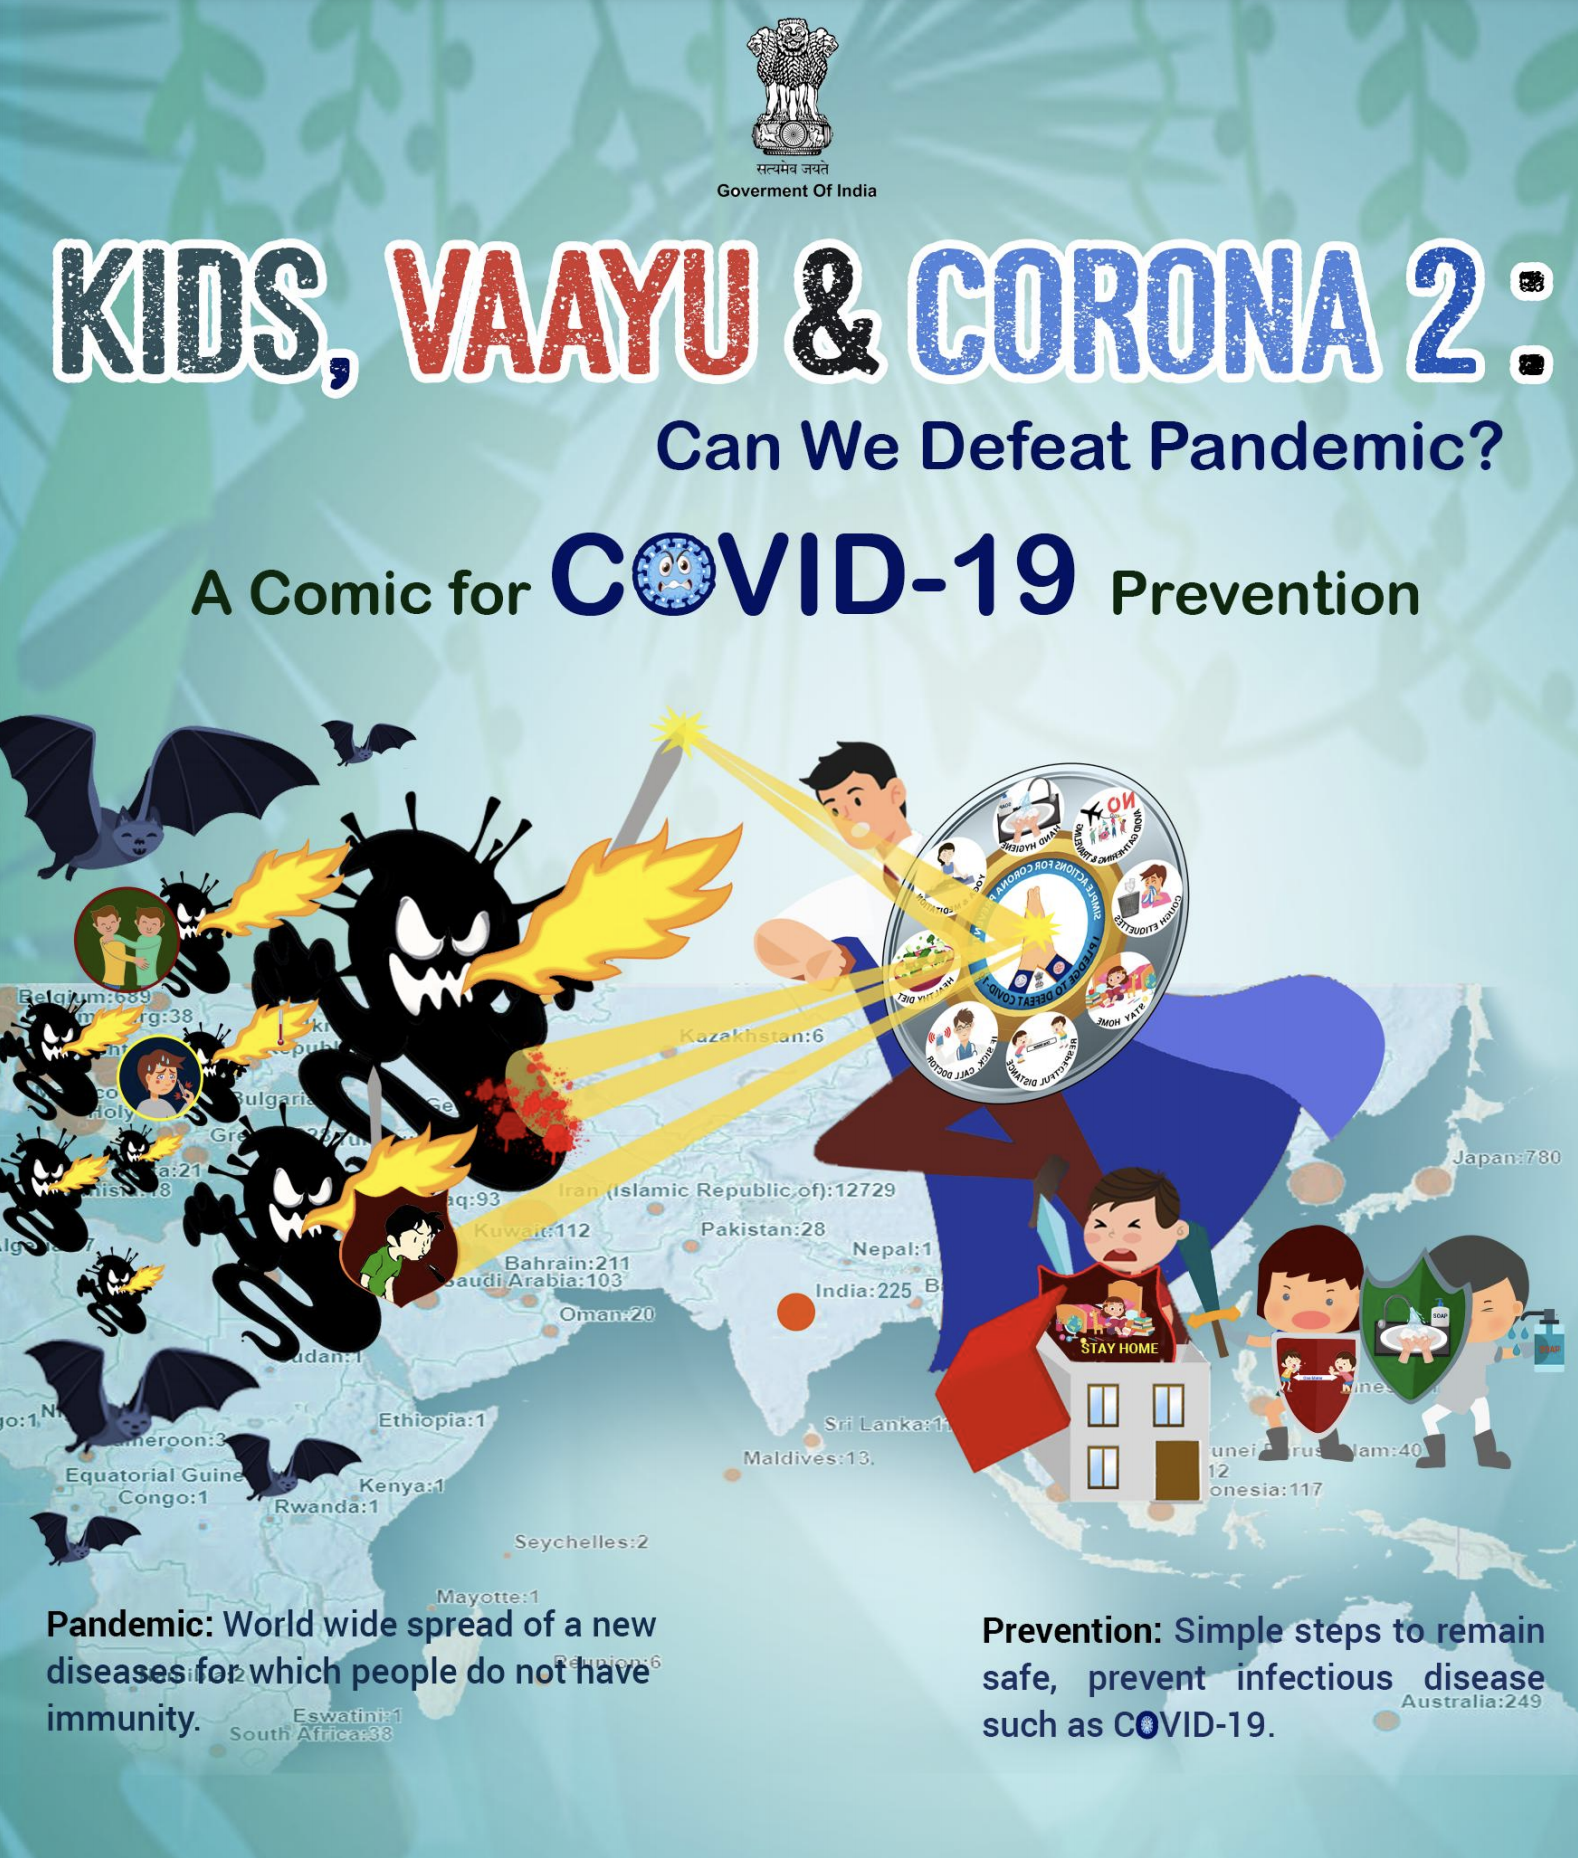 Kids, Vaayu & Corona 2: Can We Defeat Pandemic?